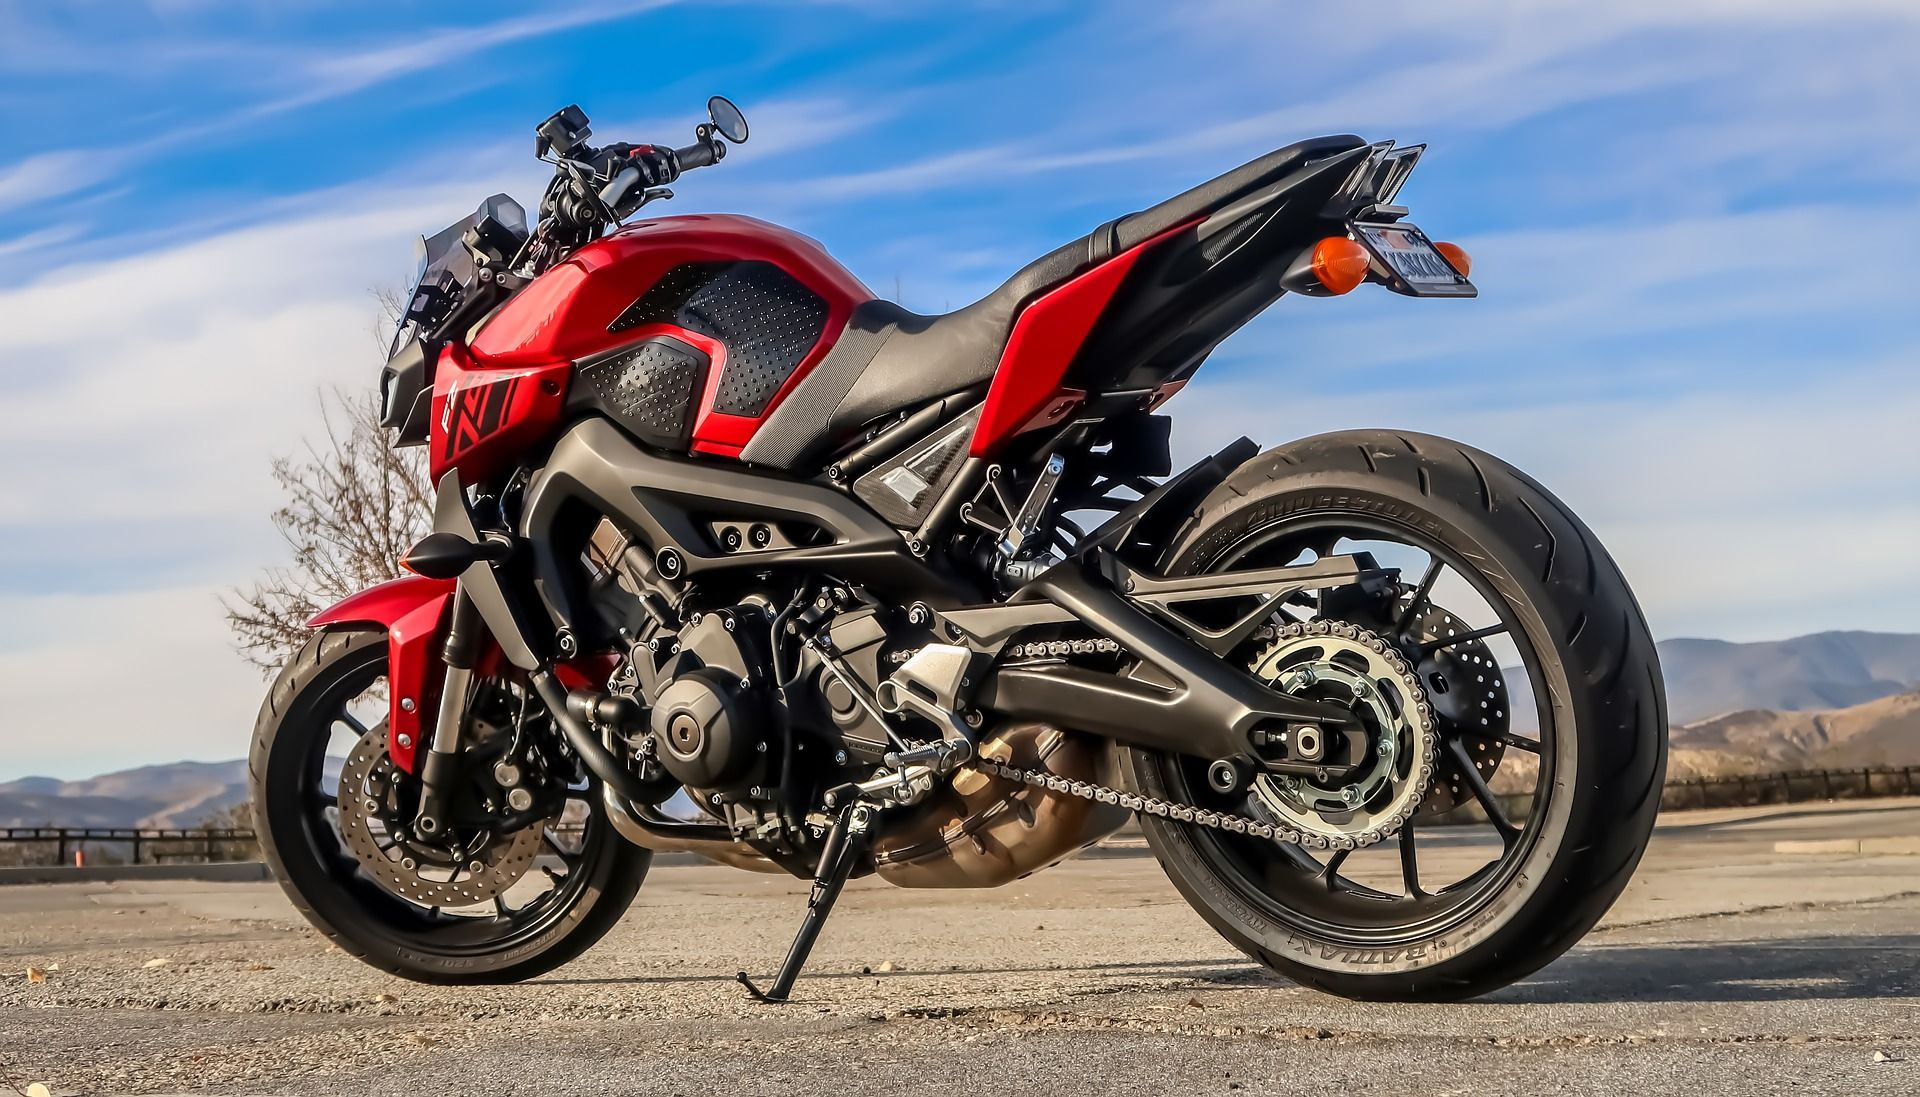 70 Bike Hd Wallpaper And Background For Desktop All Hd